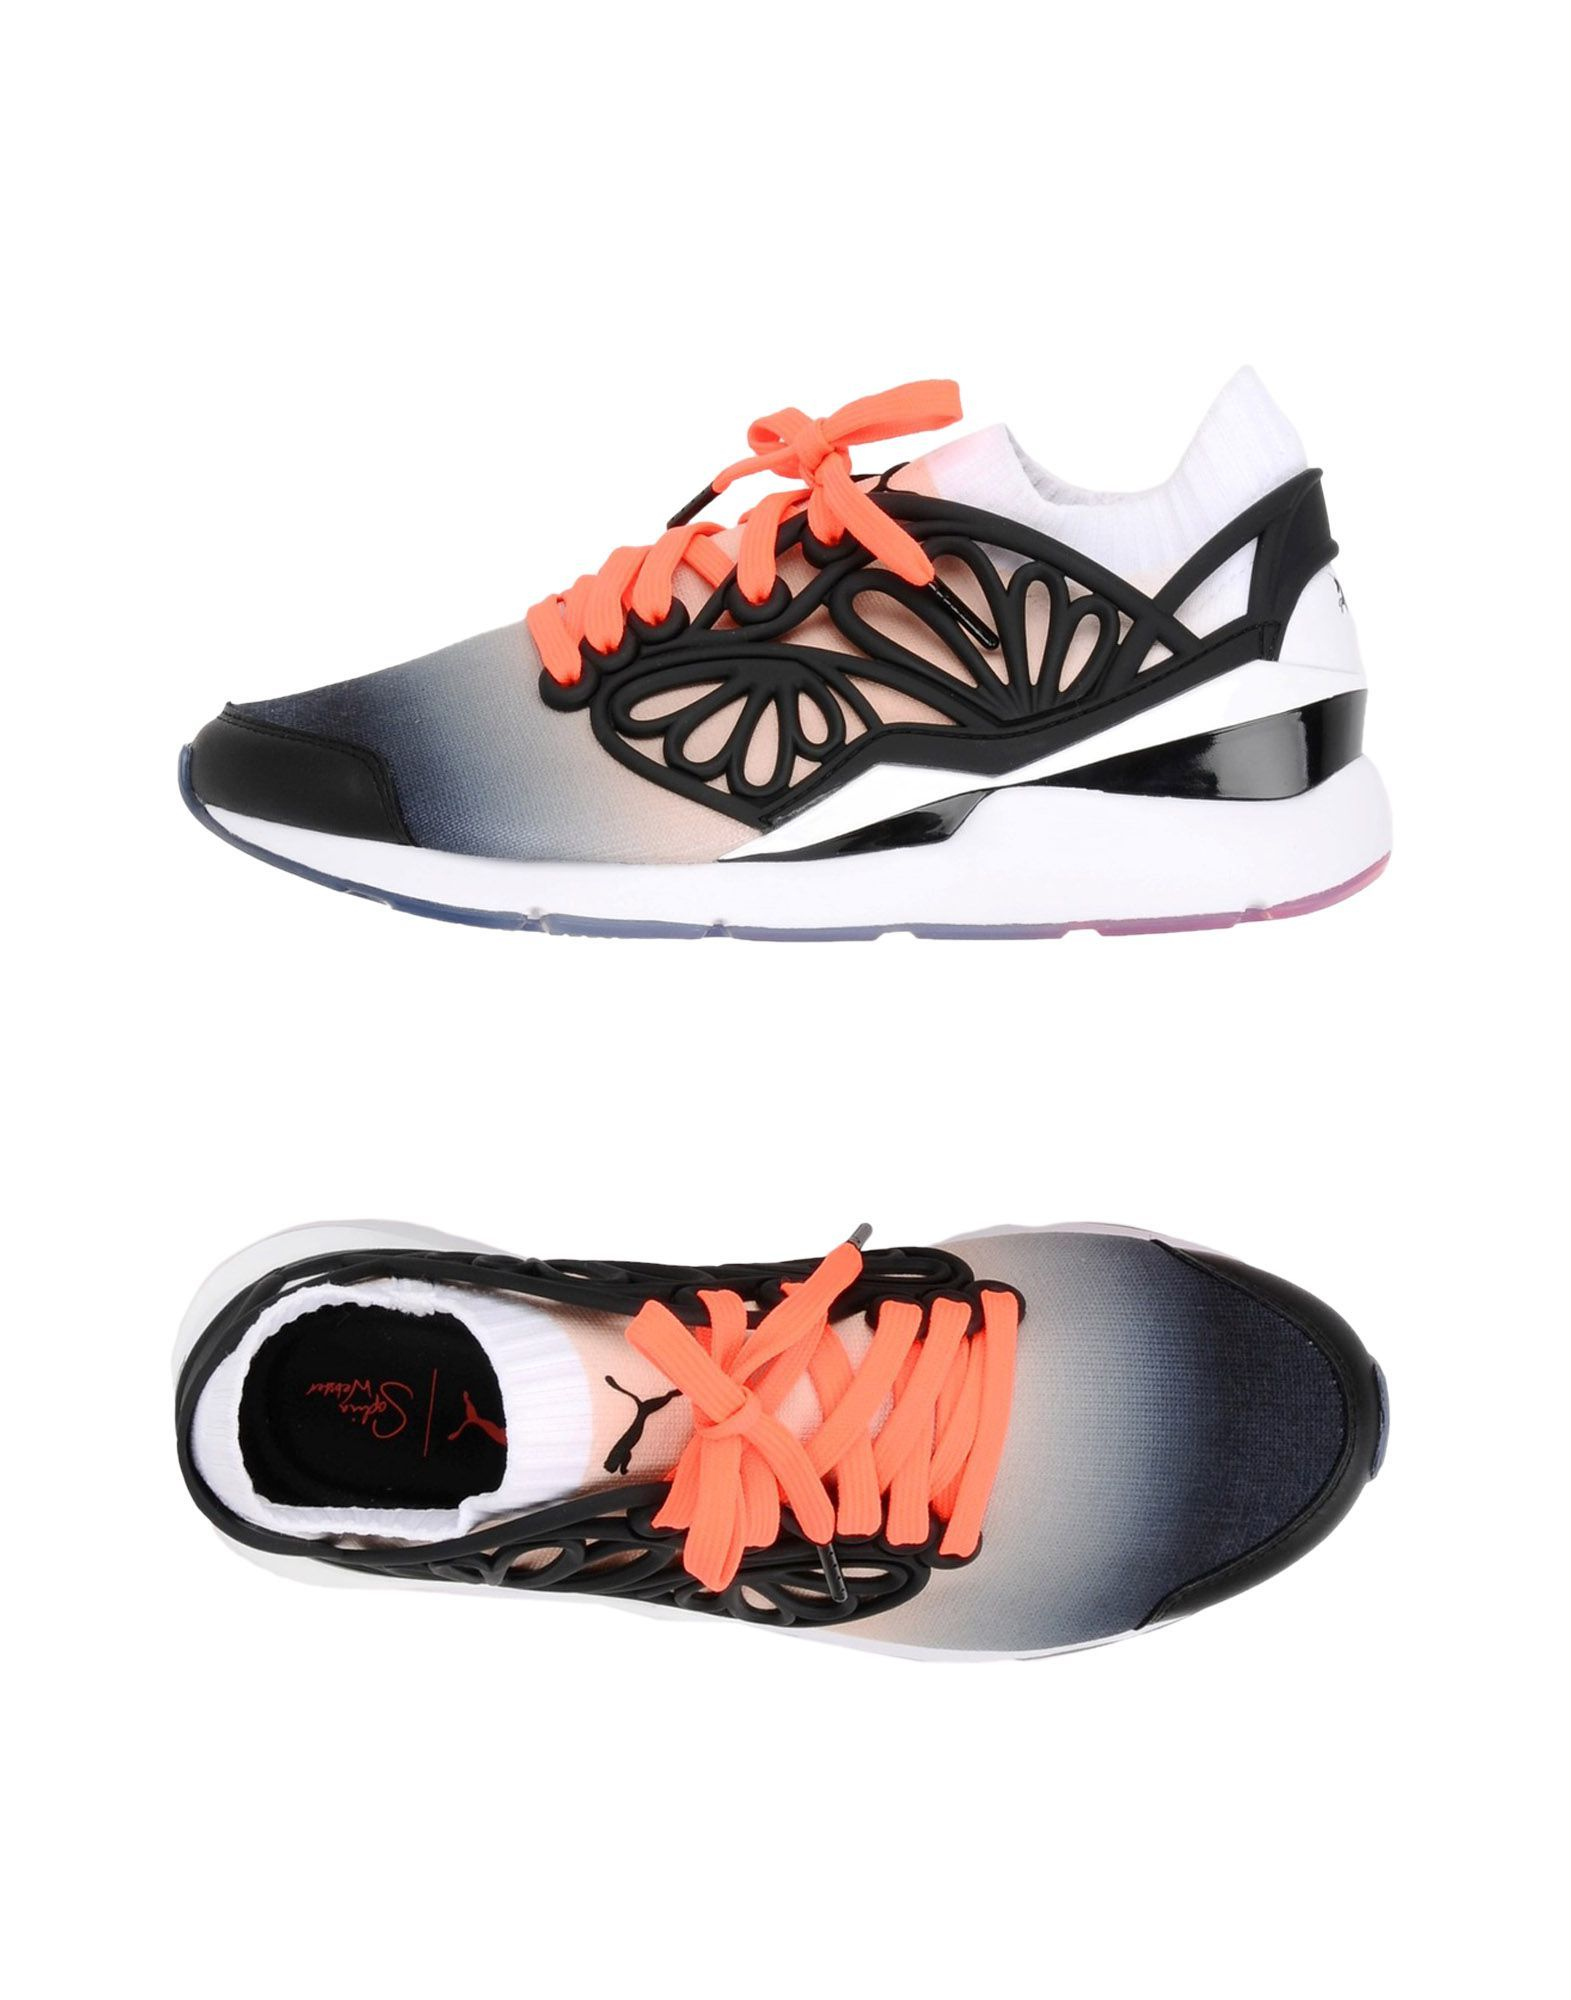 SW TSUGI X CAGE FADE - FOOTWEAR - Low-tops & sneakers PUMA X SOPHIA WEBSTER AseGF